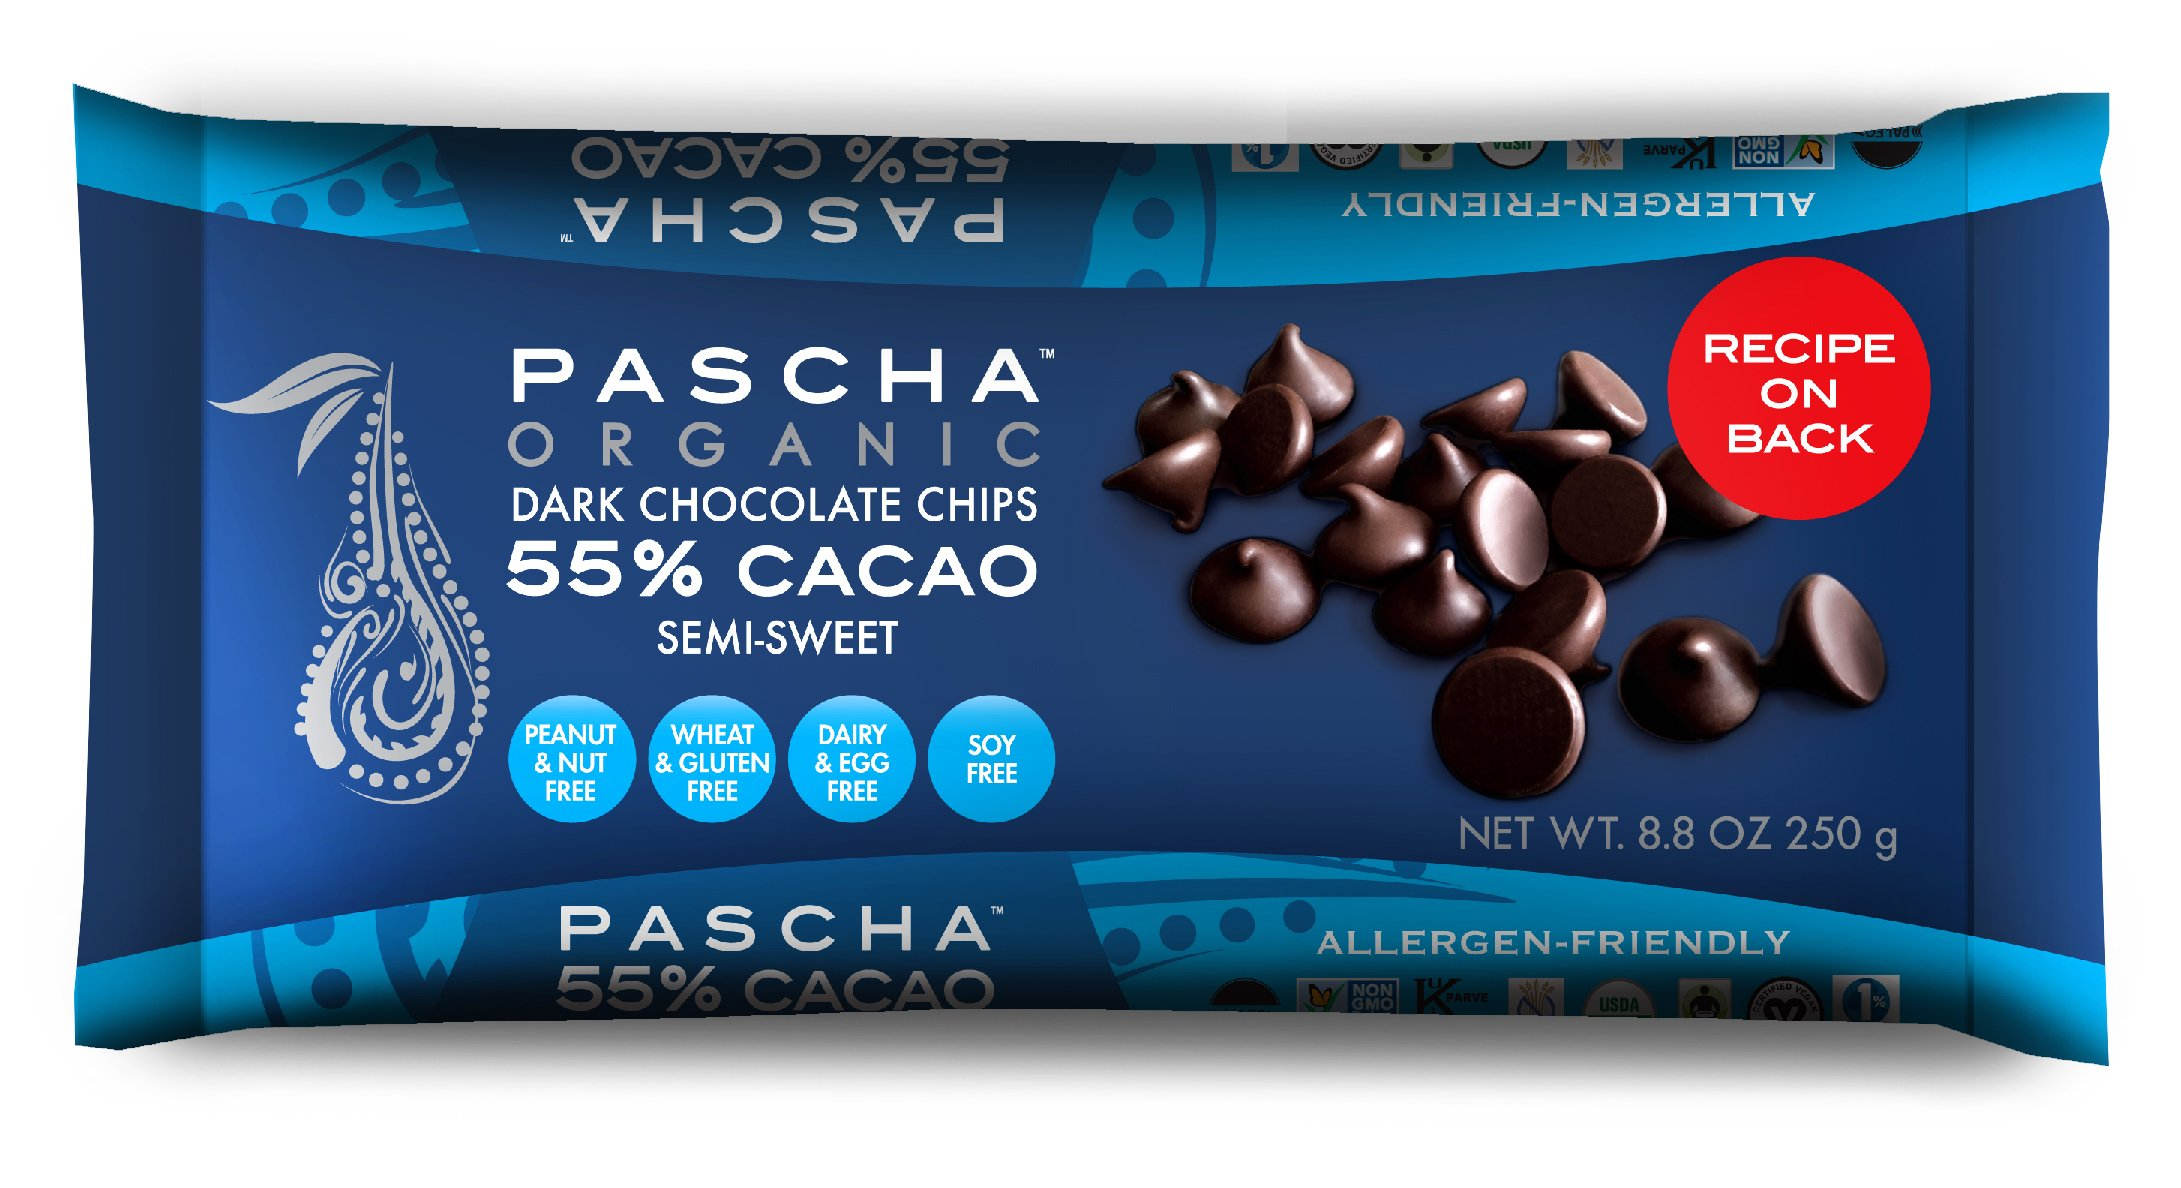 PASCHAPascha Organic Allergen-Free Semi-Sweet Dark Chocolate Chips 55 Percent Cacao 8.8 Ounce Pack of 6 (Total 52.8 Ounce)